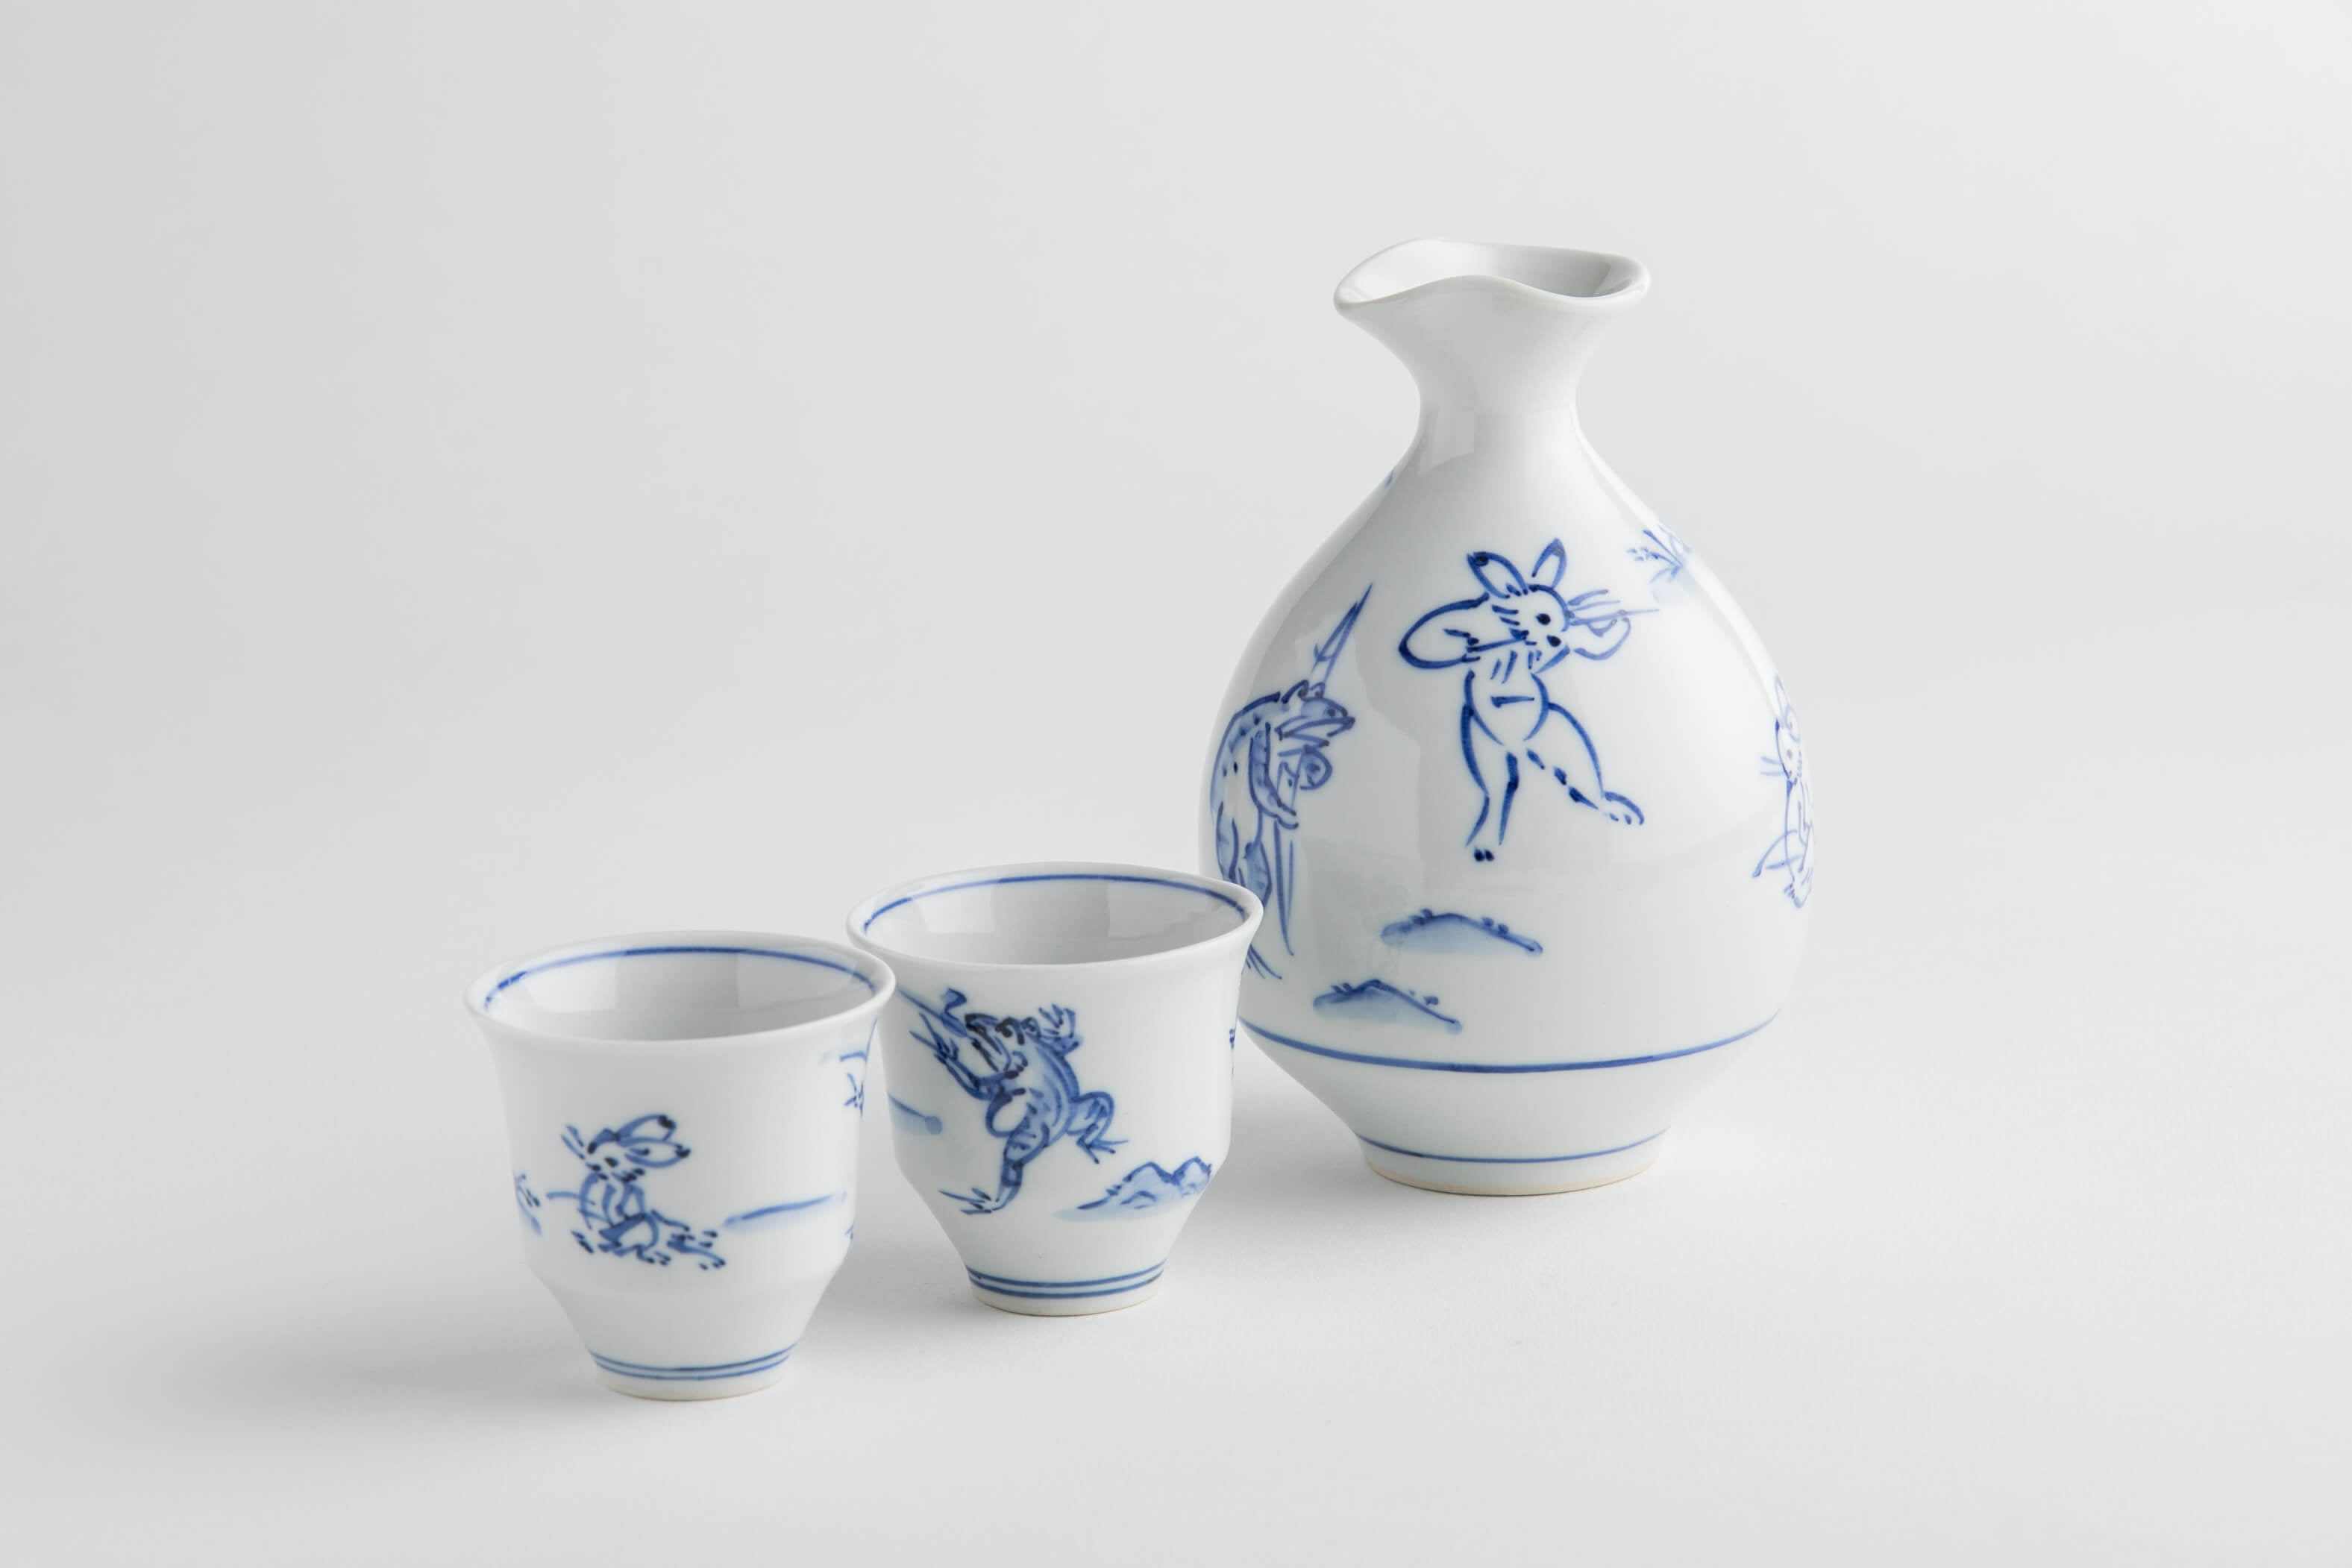 KOHZANJI Vessels for sake